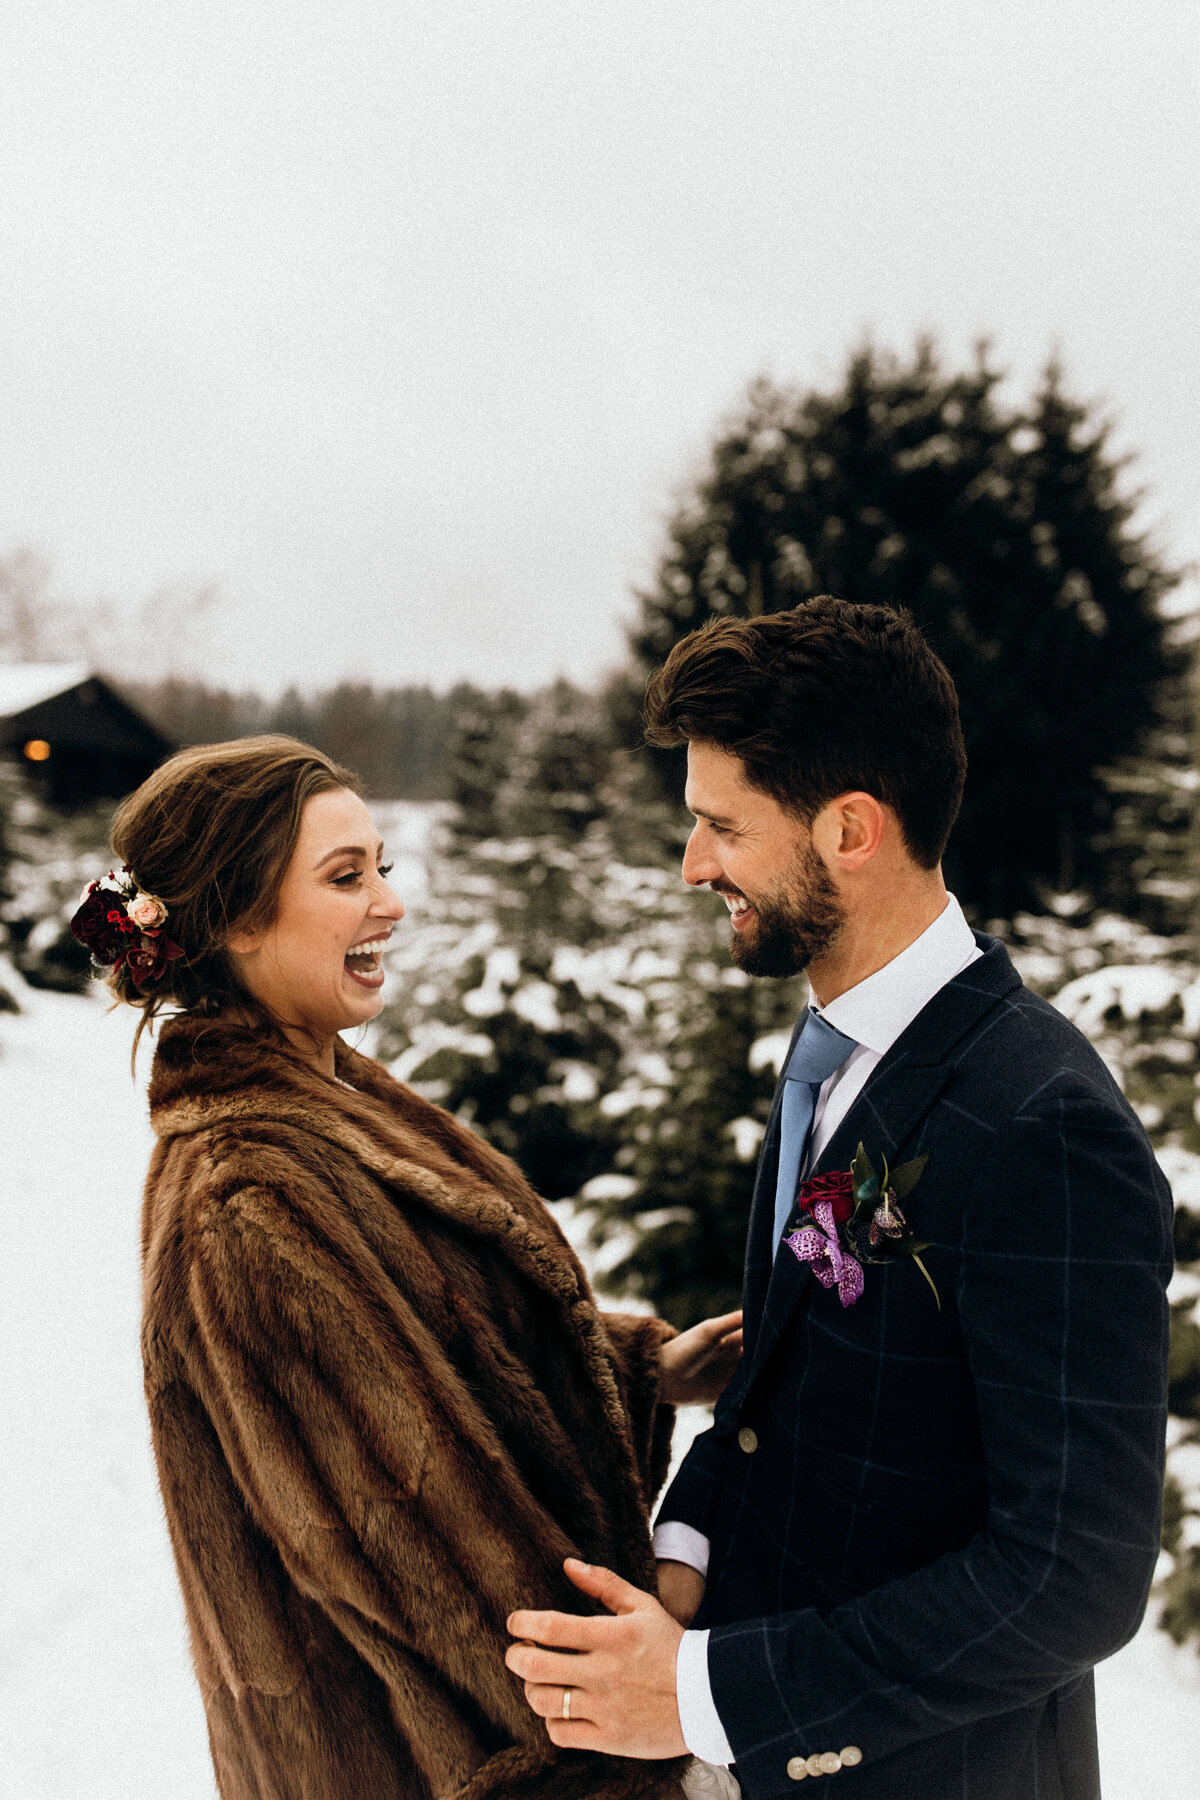 Styled Shoot - Winter Wonderland - Duitsland - 2019 2955